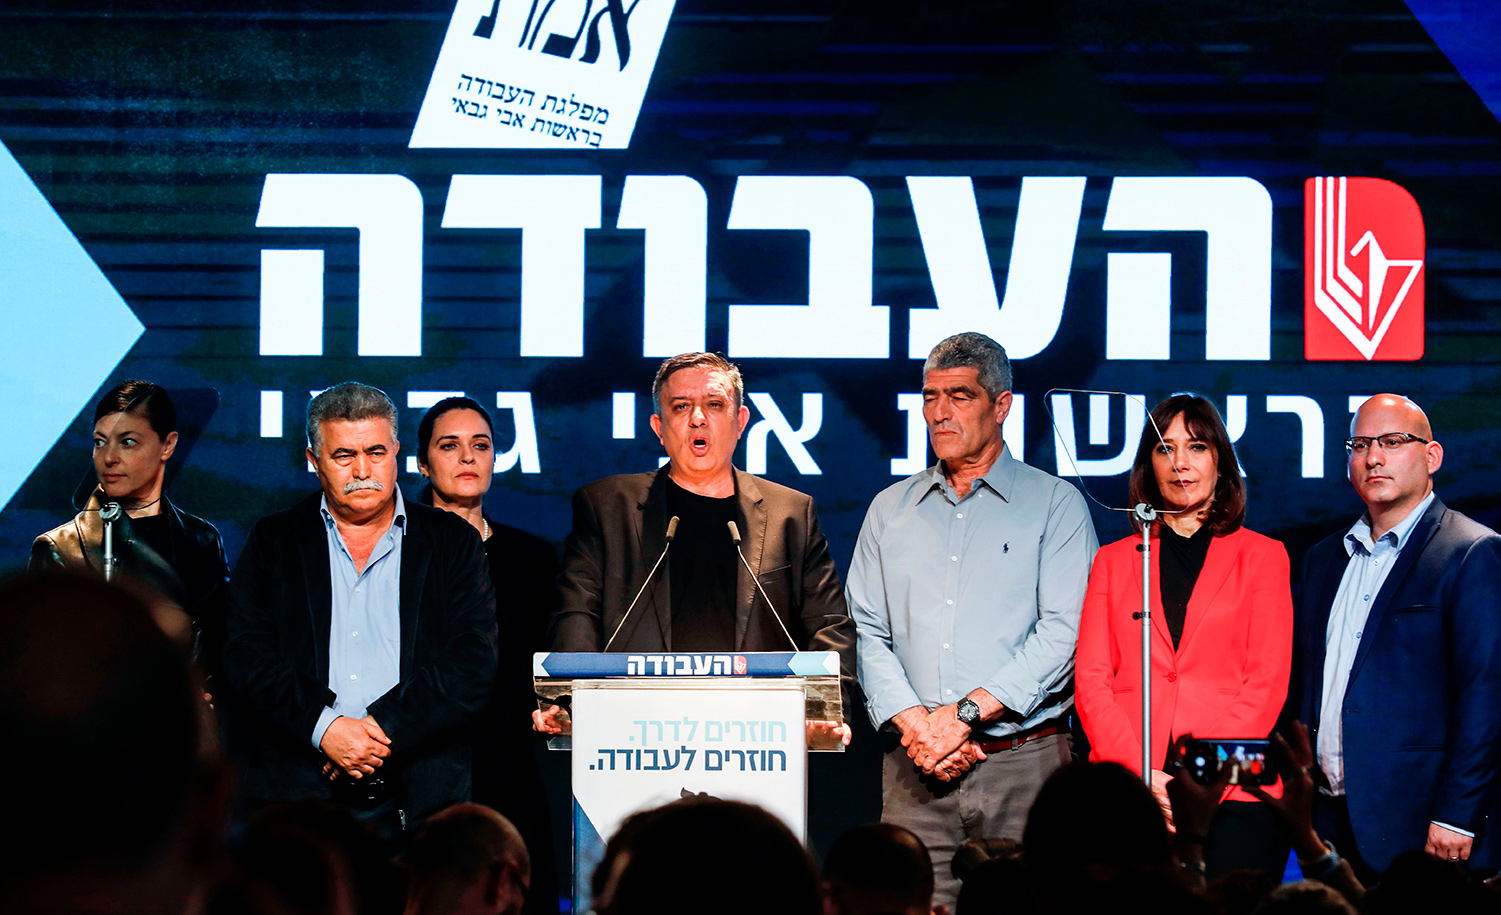 Avi Gabbay, then-chairman of Israel's Labor Party, speaks at his party's headquarters in Tel Aviv on election night on April 9, 2019. JALAA MAREY/AFP via Getty Images.